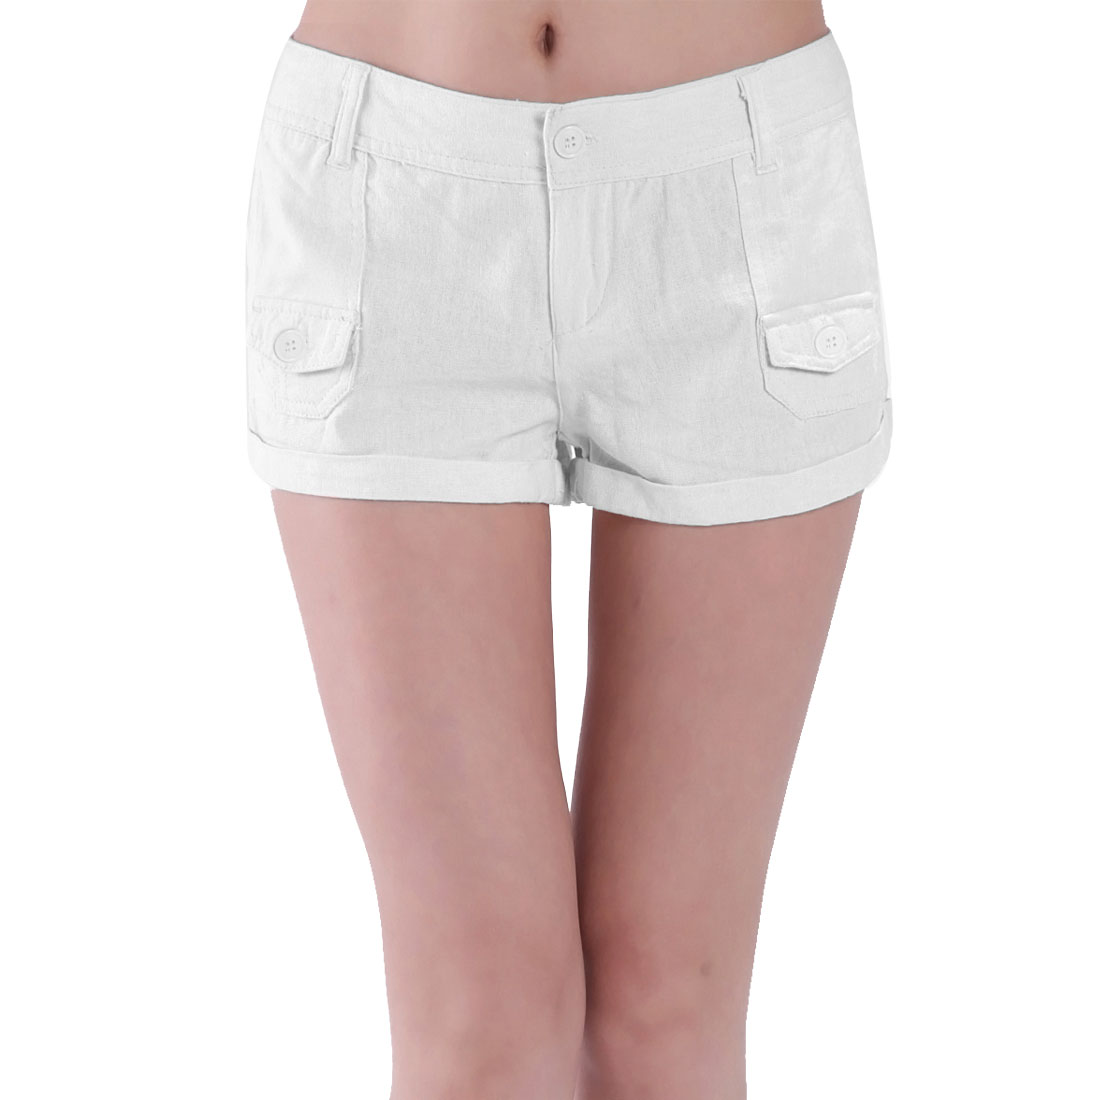 Solid White Low Waist Belt Loop Zipper Closure Shorts M for Women